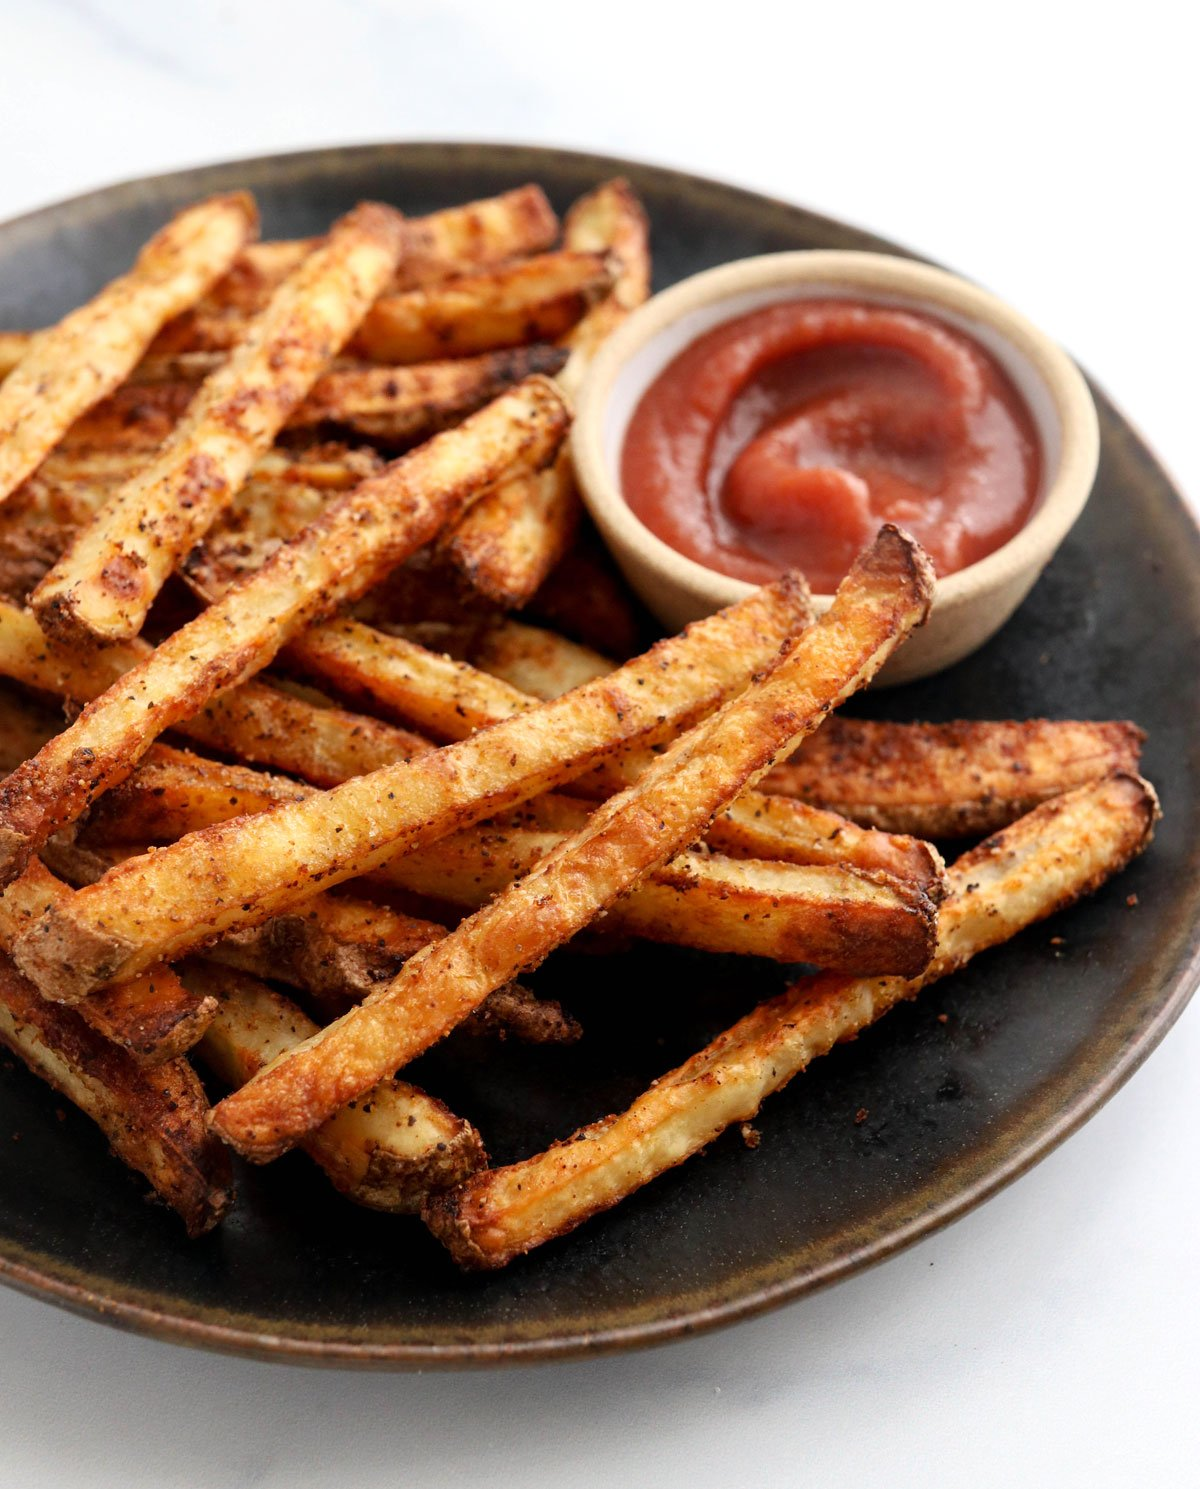 baked french fries on black plate with ketchup